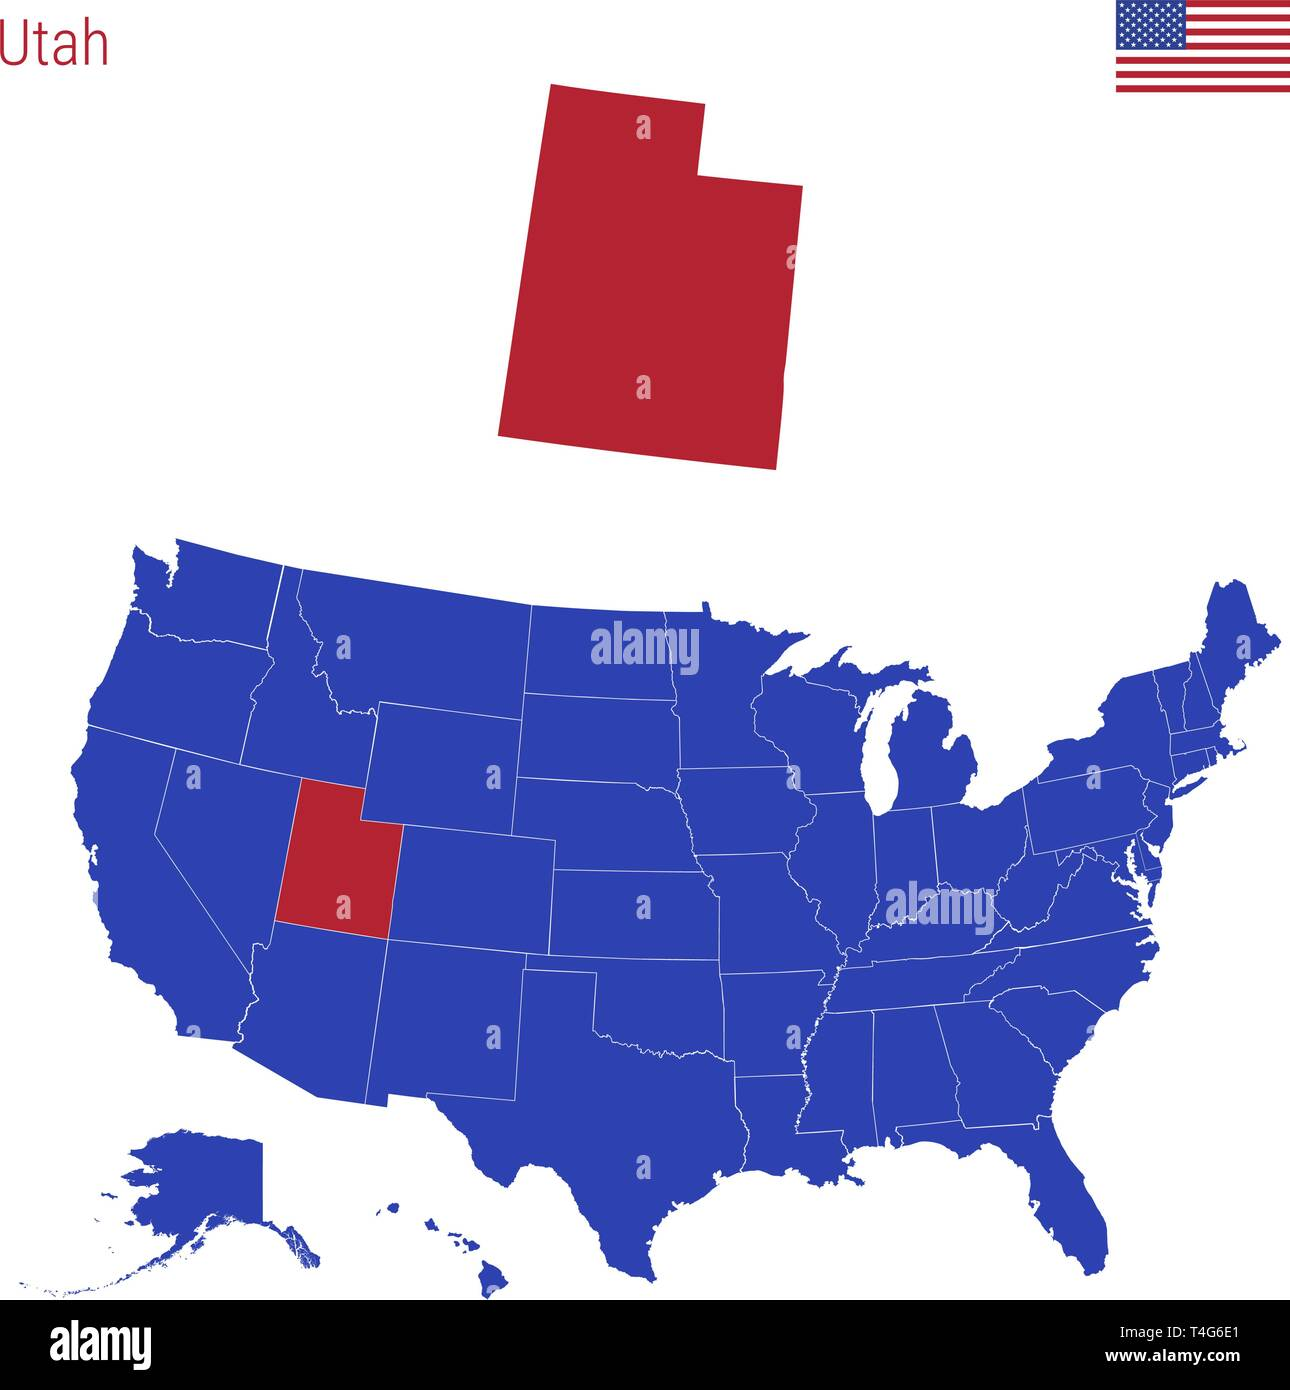 Utah Map Vector Stock Photos & Utah Map Vector Stock Images ...